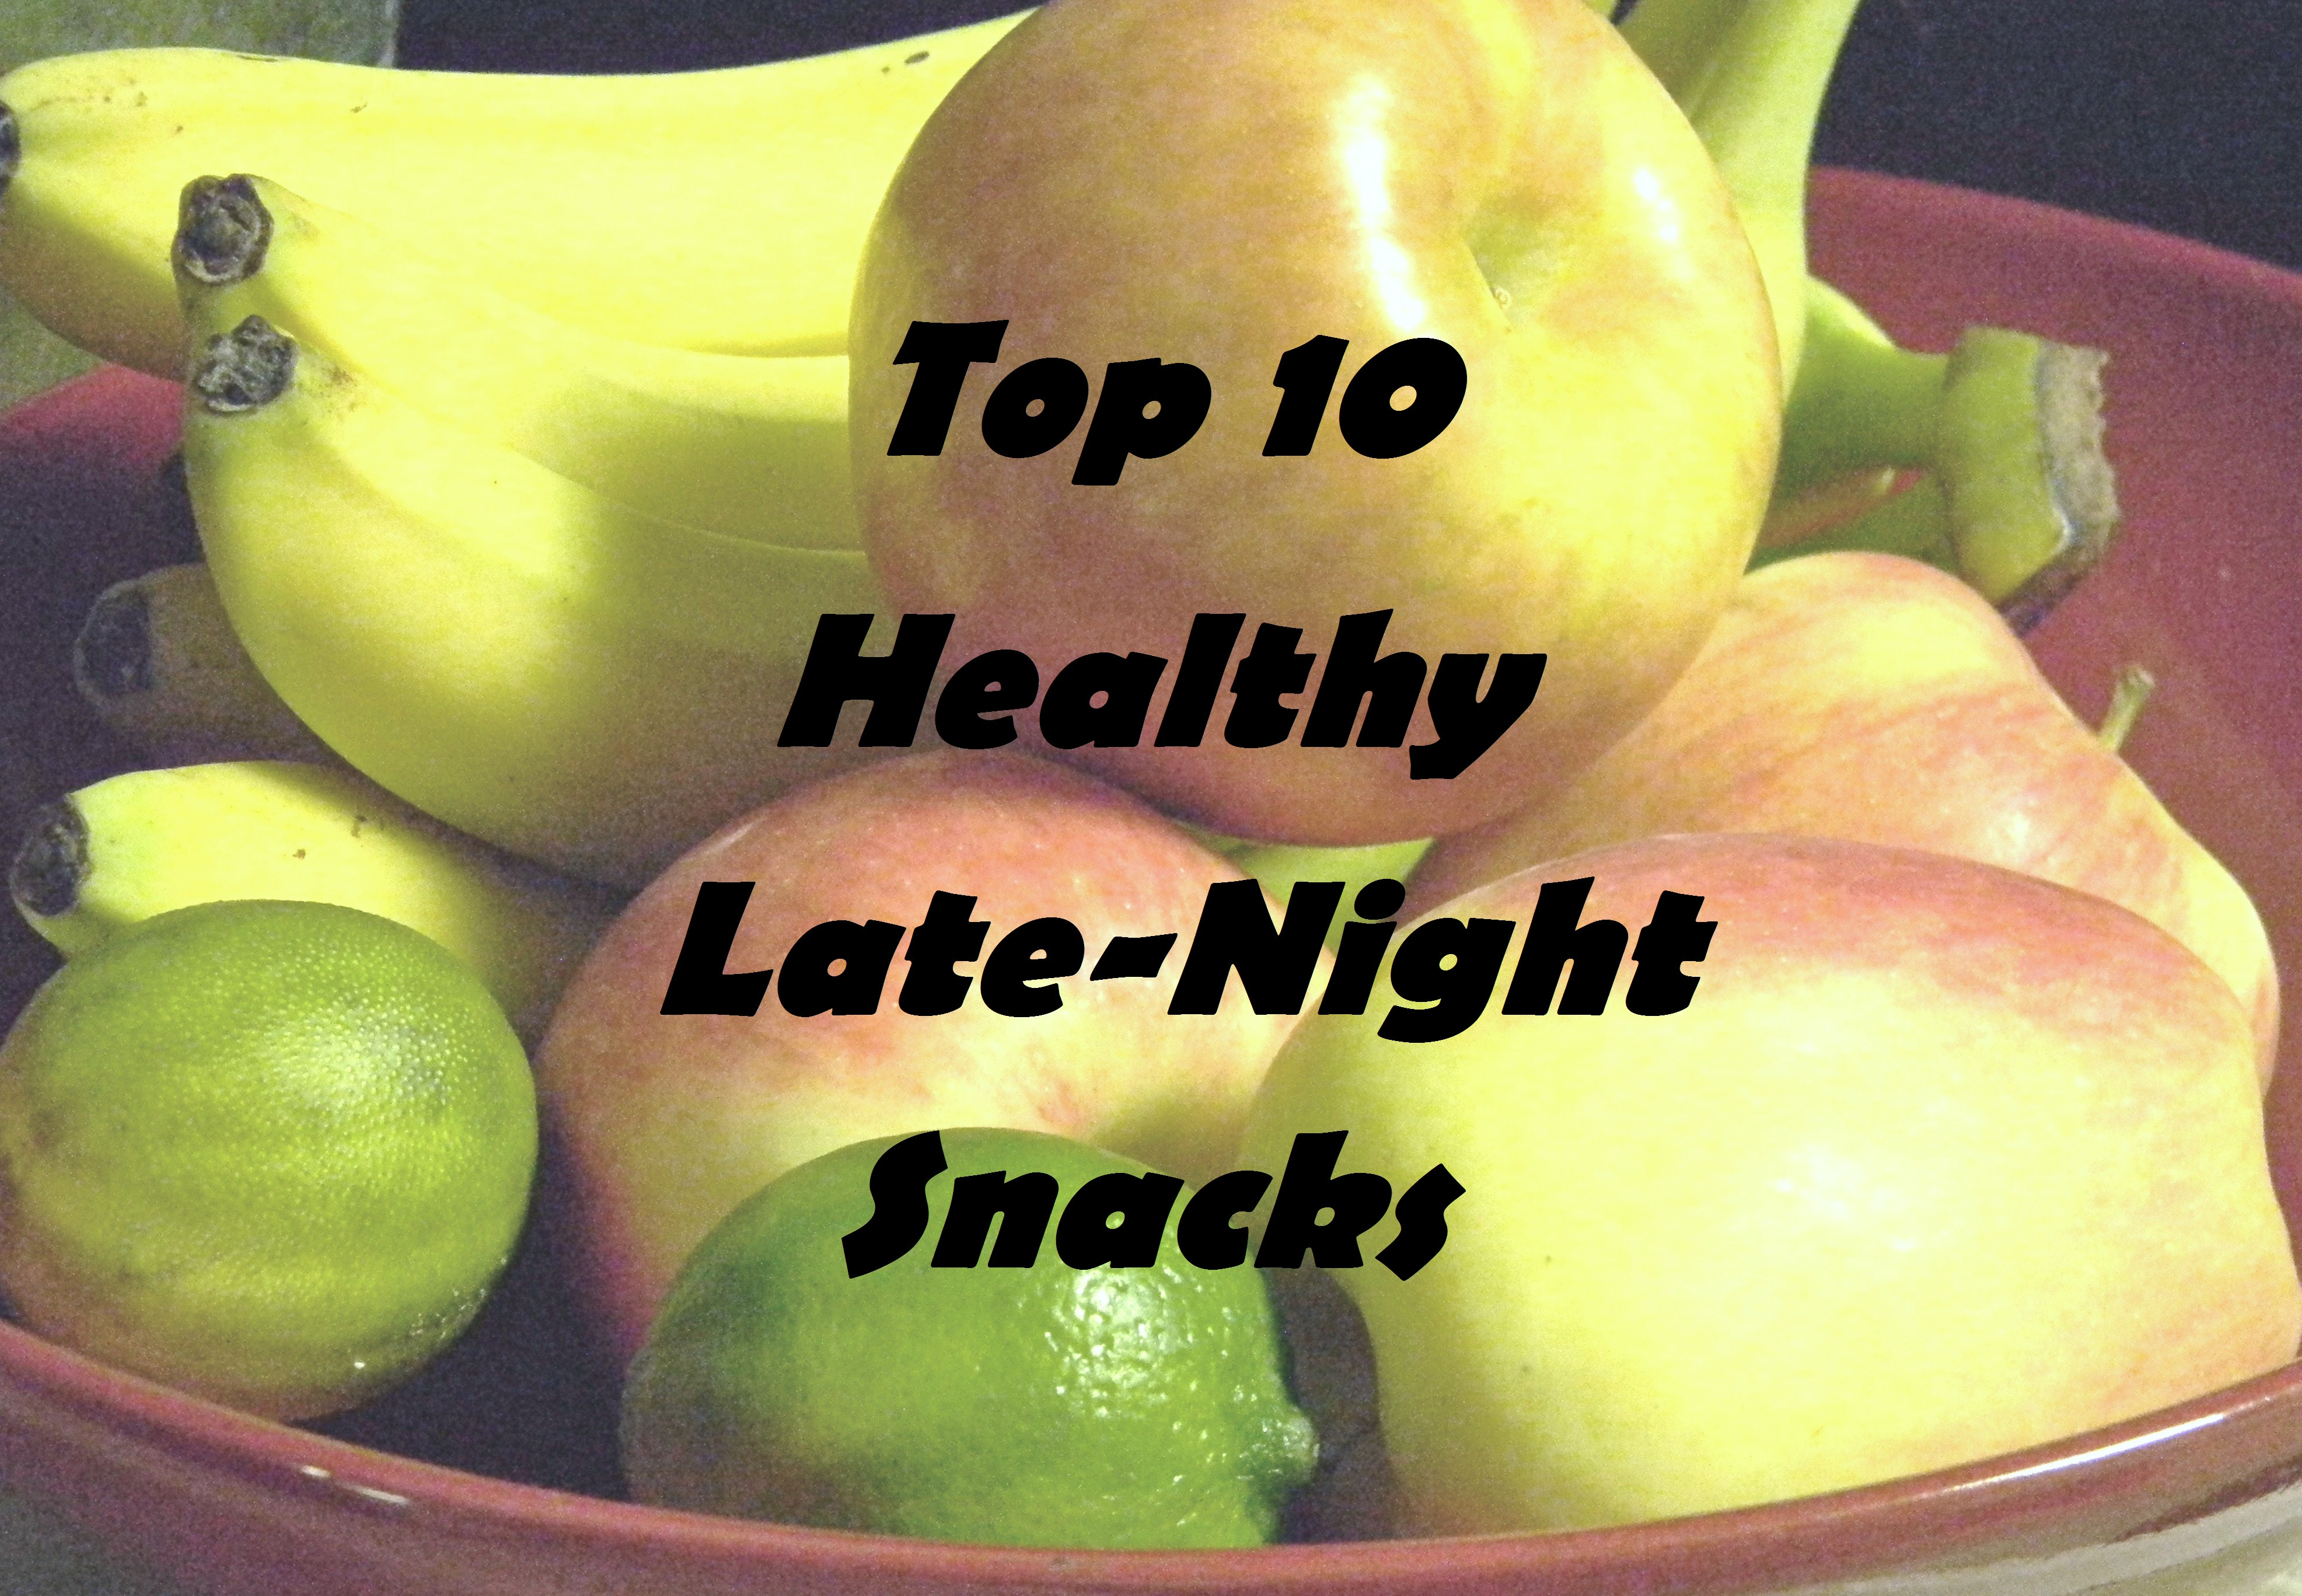 Best Healthy Late Night Snacks 20 Of the Best Ideas for top 10 Healthy Late Night Snacks Pretty Hungry